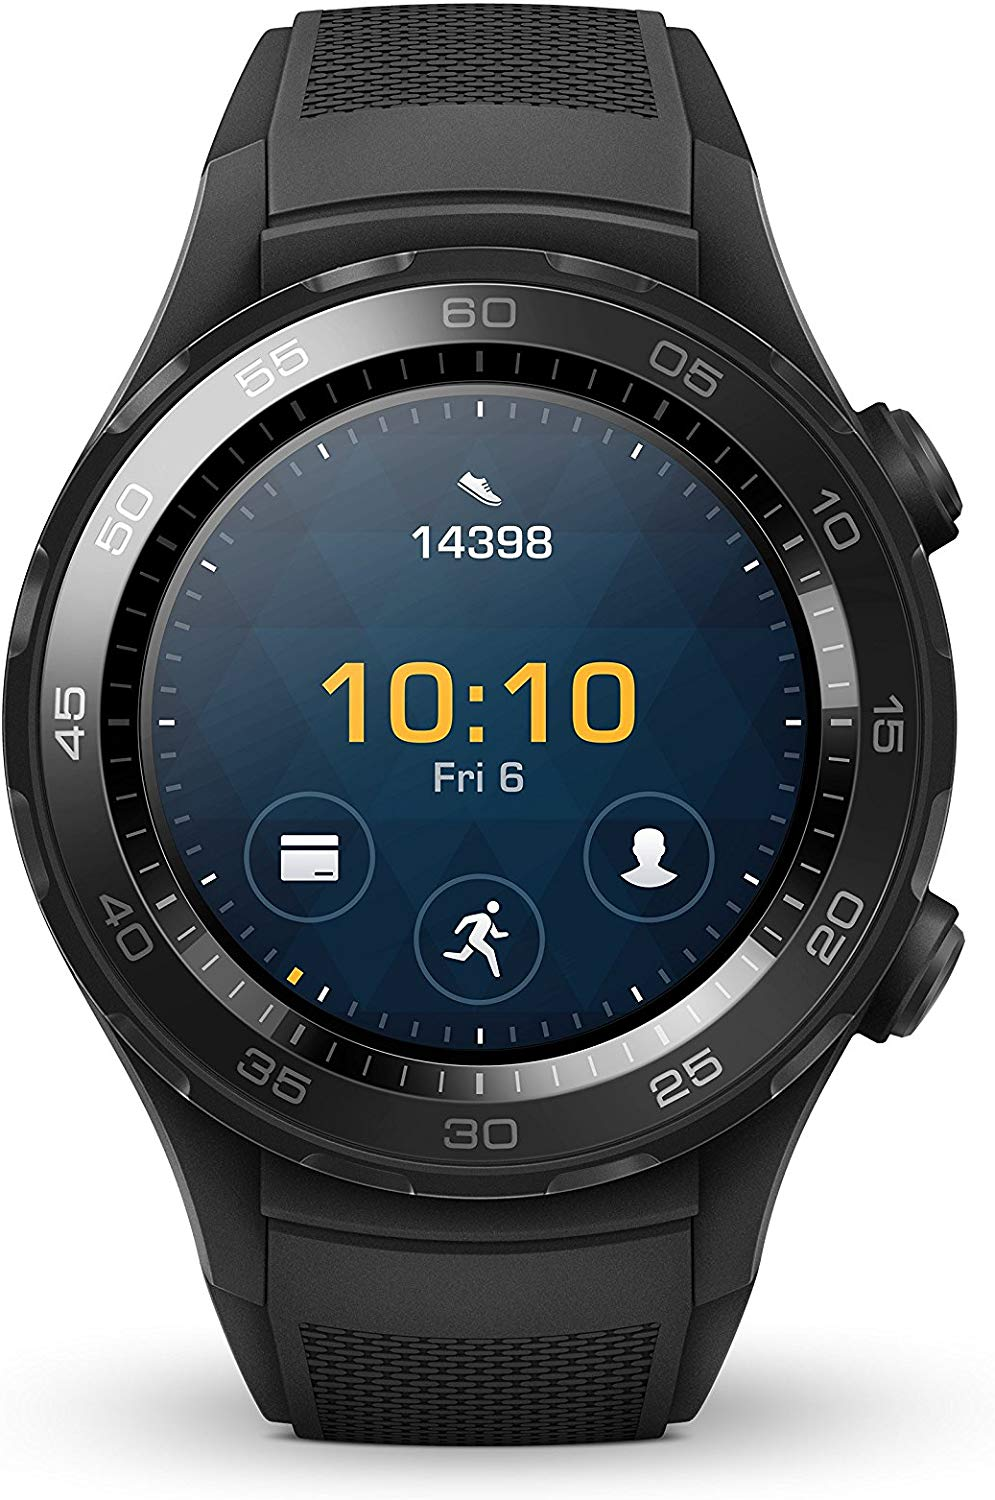 Offerta Huawei Watch 2 su TrovaUsati.it